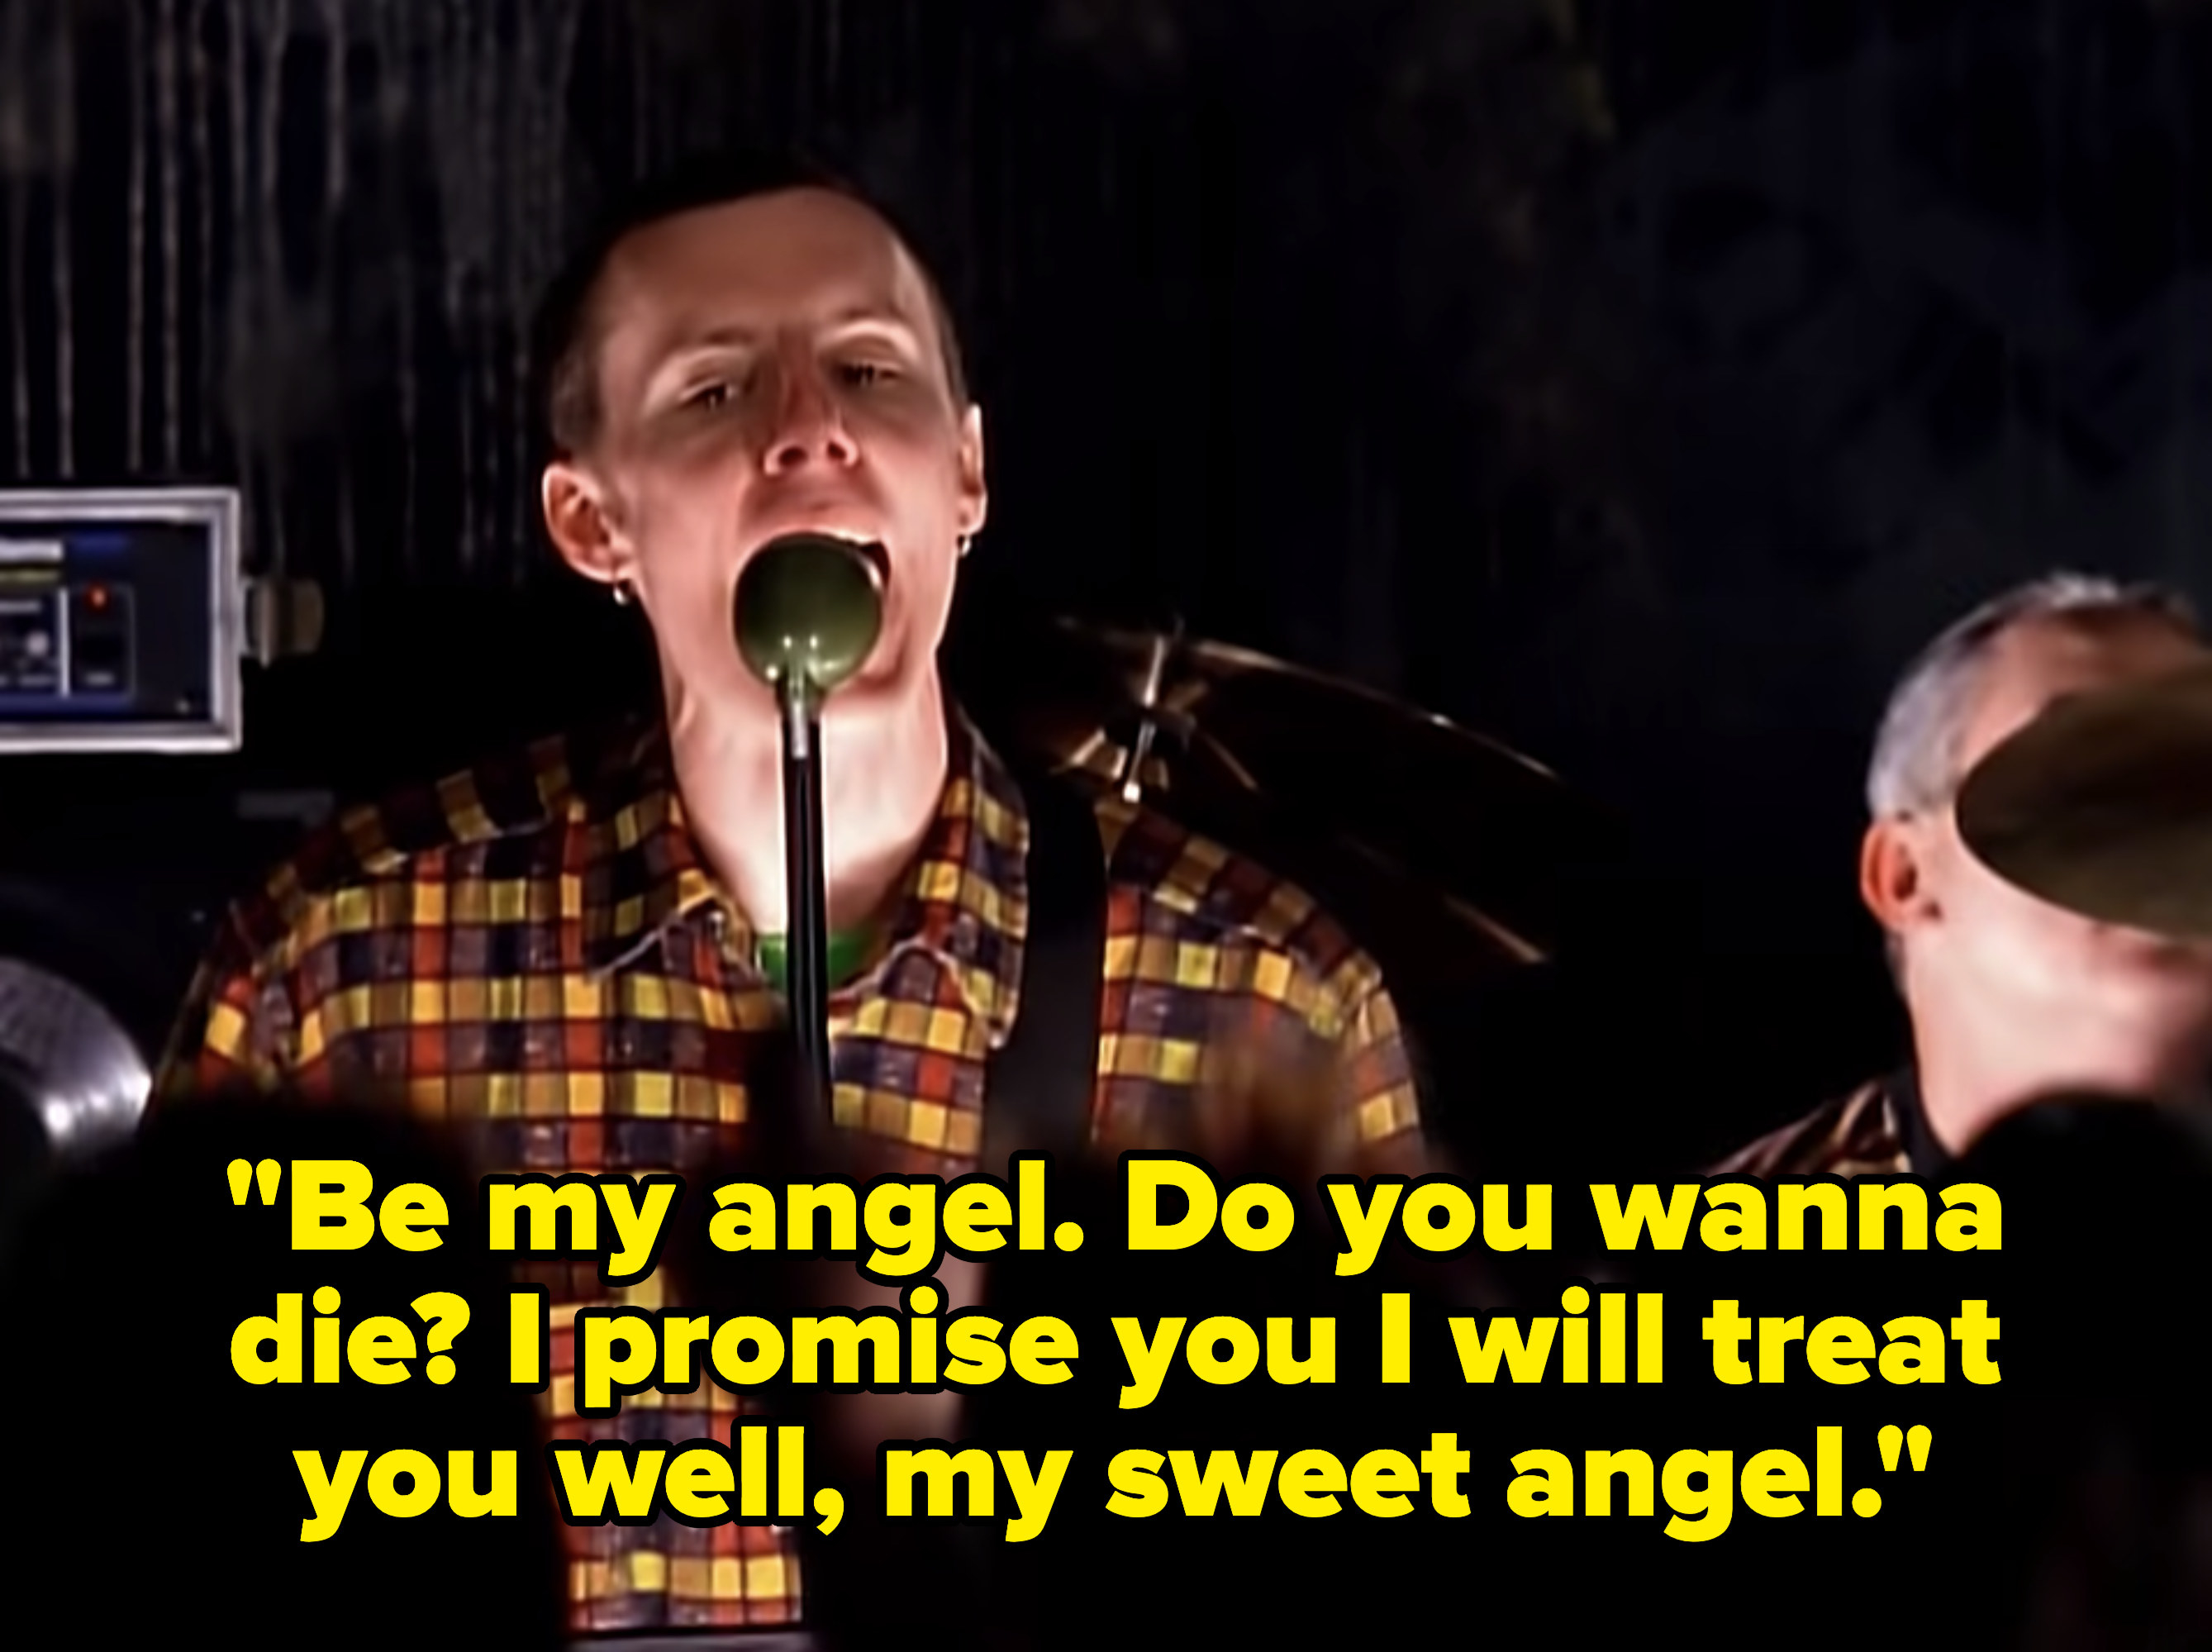 Lyrics: Be my angel. Do you wanna die? I promise you I will treat you well, my sweet angel